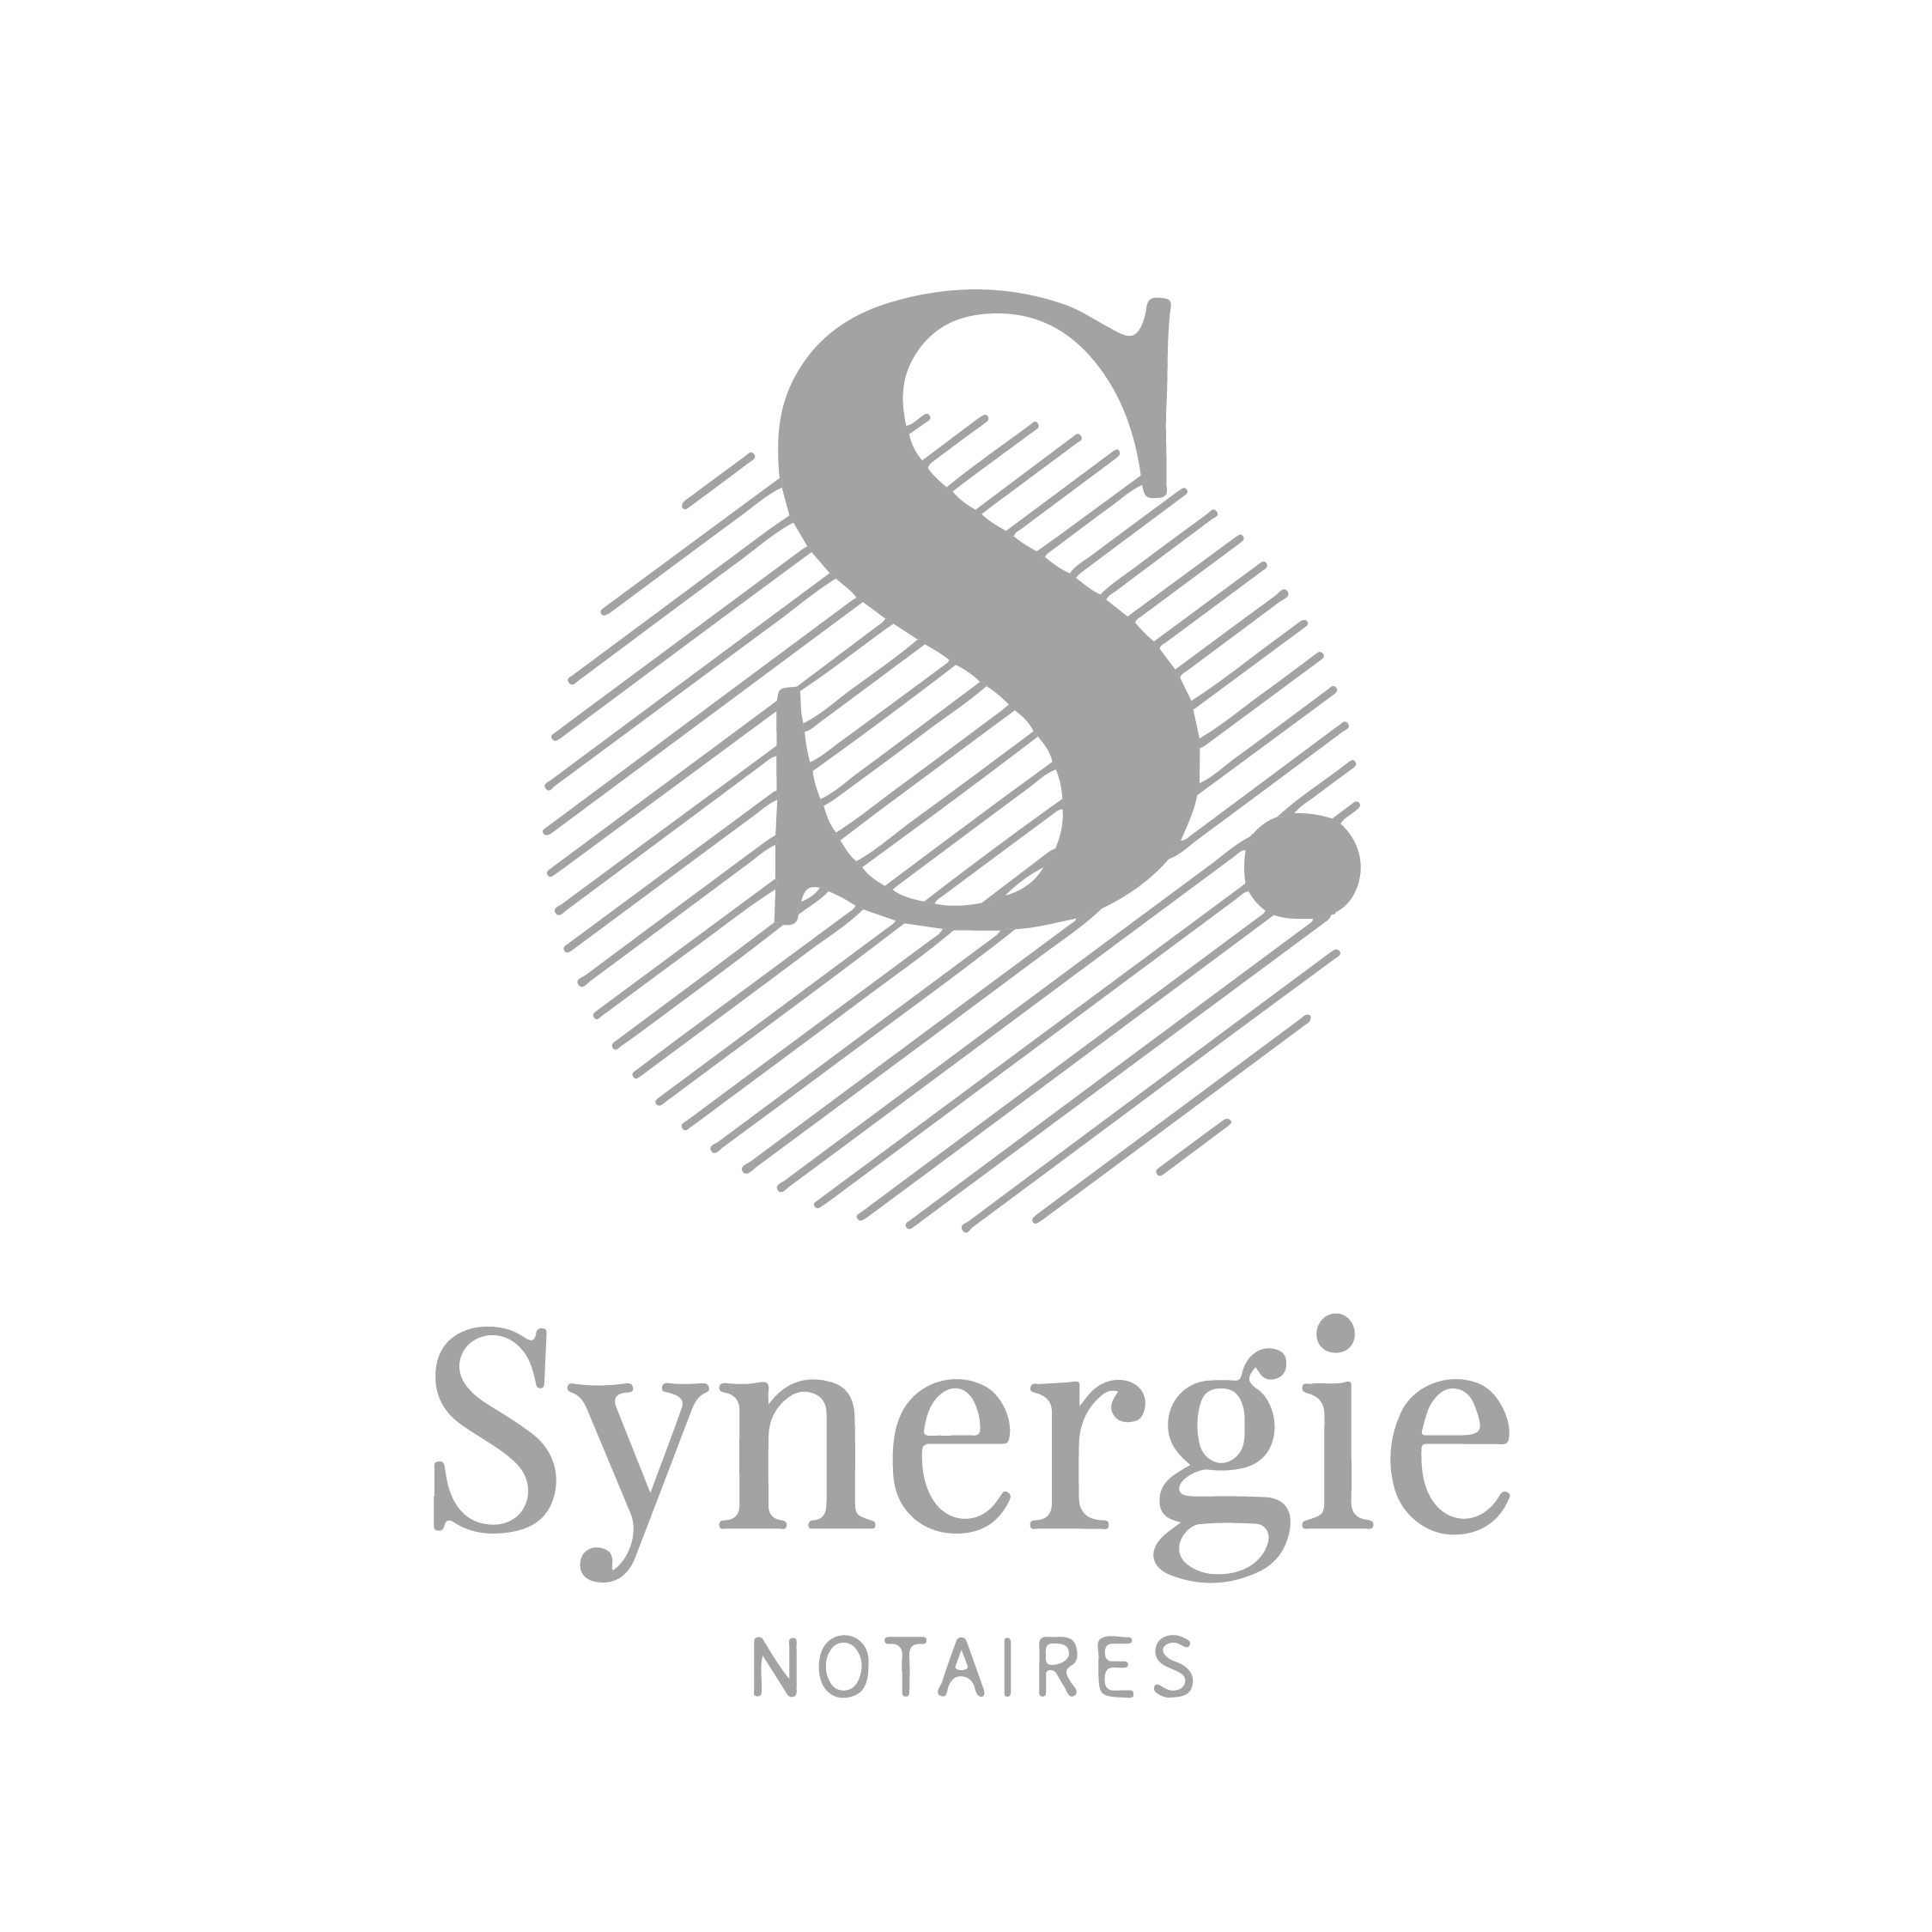 Logo Synergie - Break-Out Company